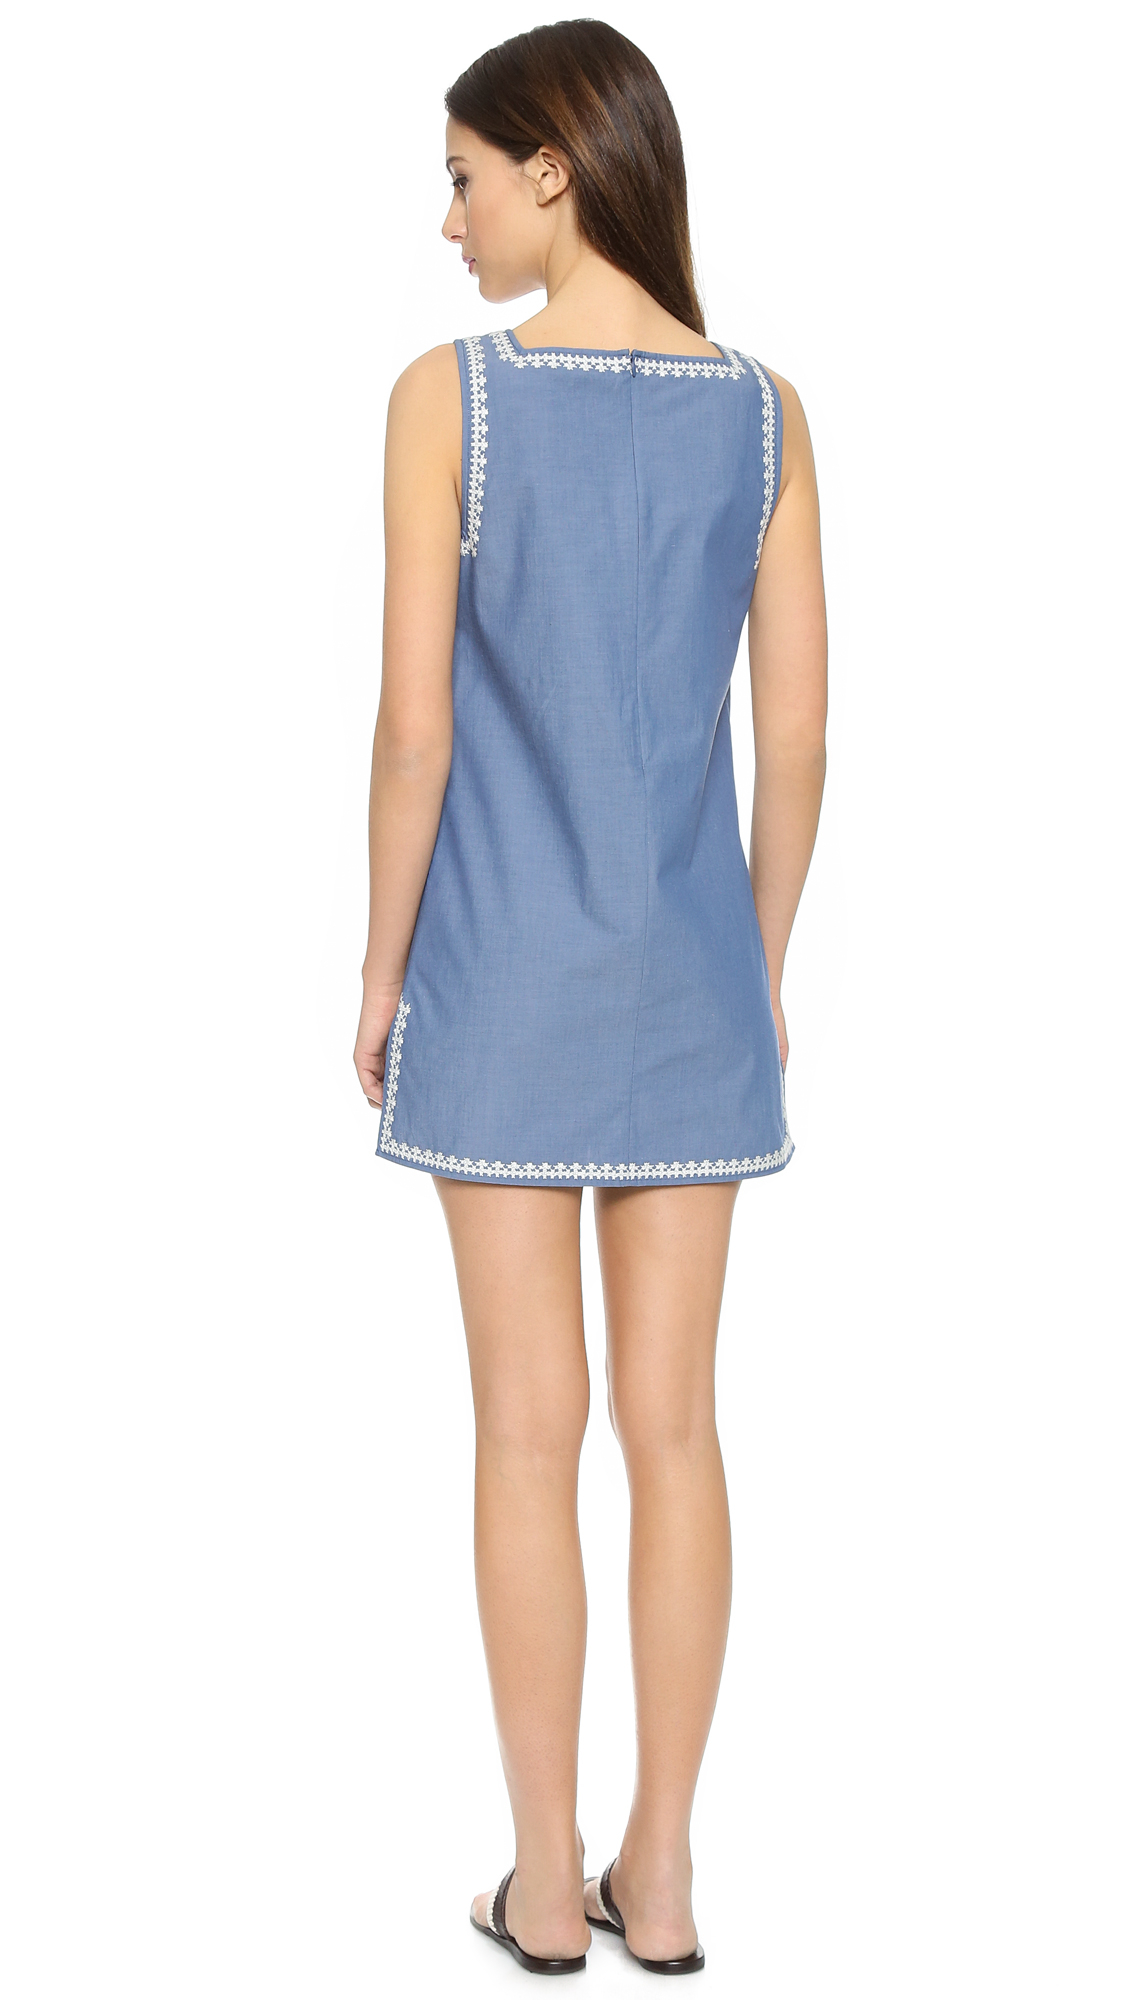 Tory burch embroidered chambray dress indigo chambray for Chambray dress